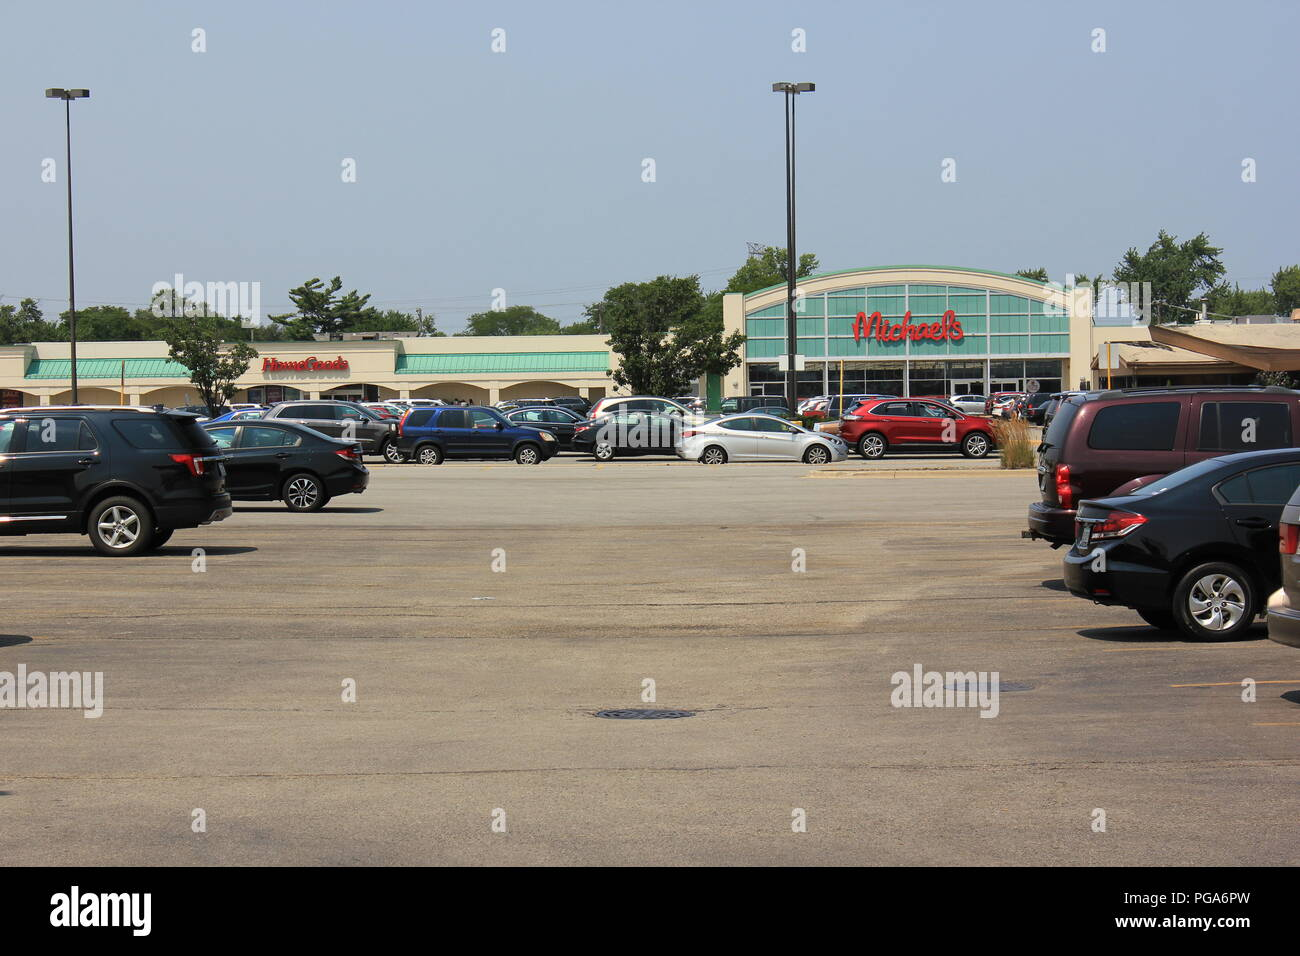 Standard strip mall shopping center in suburban Niles, Illinois, USA on a summer day. - Stock Image